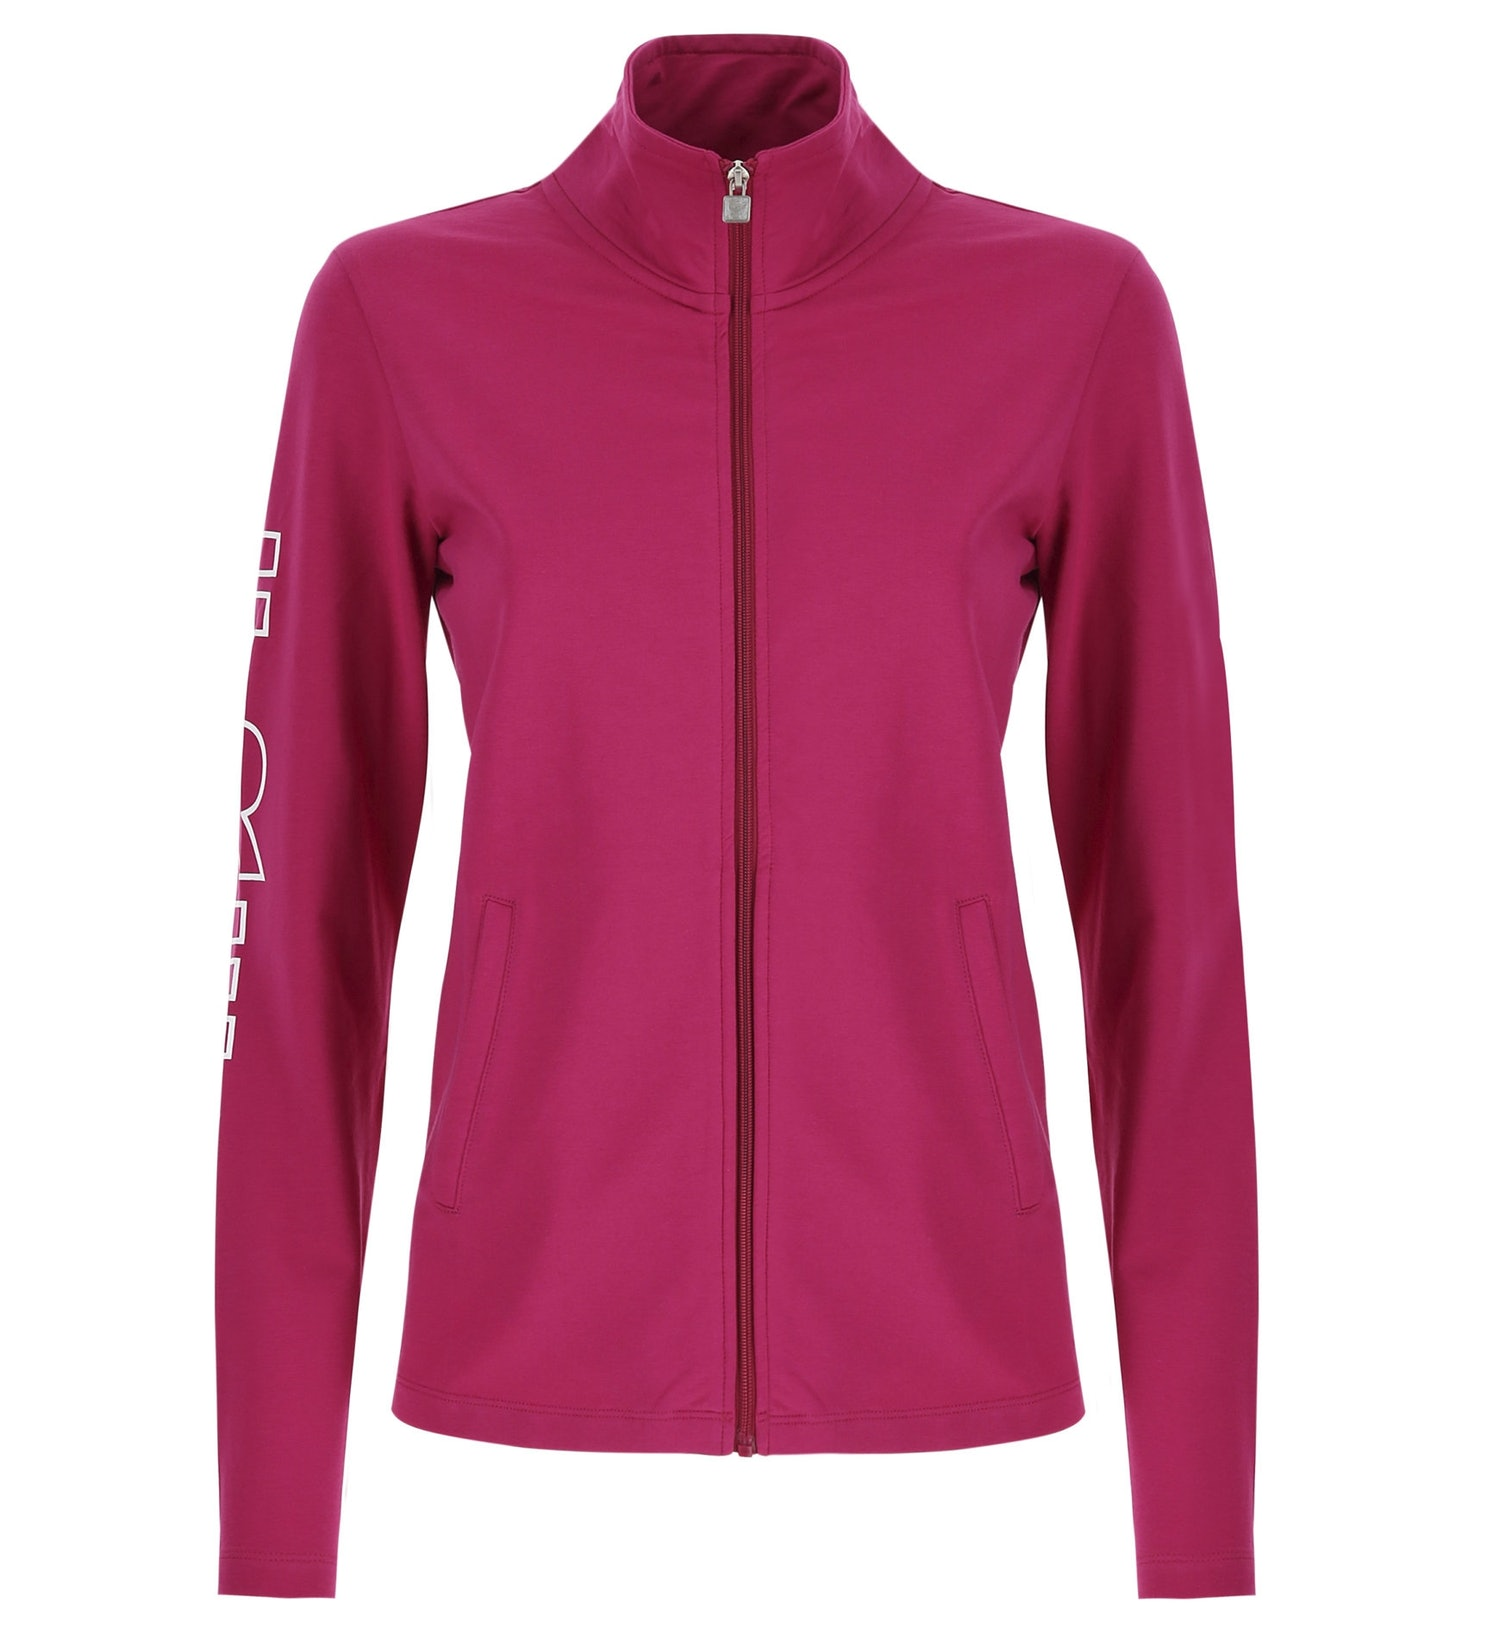 Freddy Choose Your Look Sweatshirt W - giacca fitness - donna